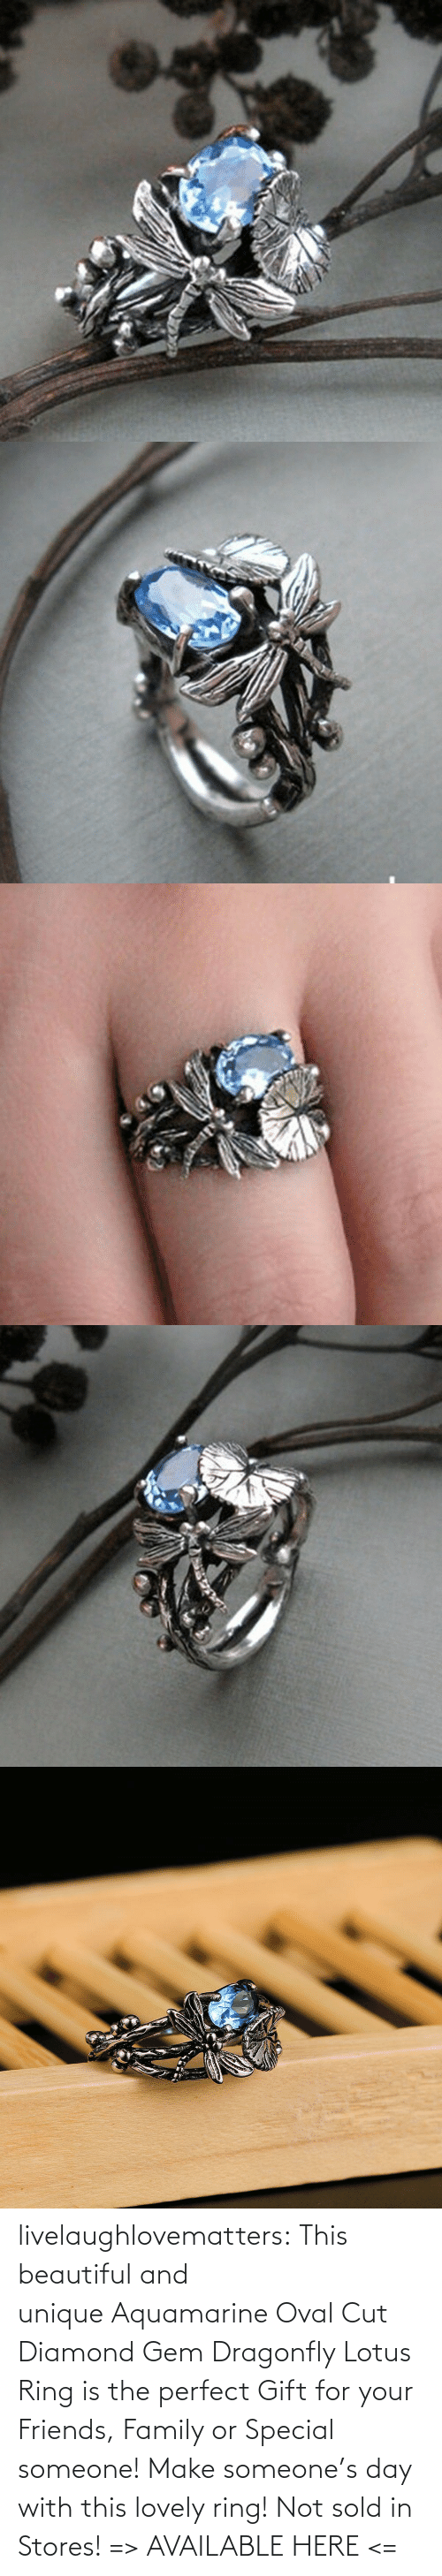 beautiful: livelaughlovematters: This beautiful and unique Aquamarine Oval Cut Diamond Gem Dragonfly Lotus Ring is the perfect Gift for your Friends, Family or Special someone! Make someone's day with this lovely ring! Not sold in Stores! => AVAILABLE HERE <=